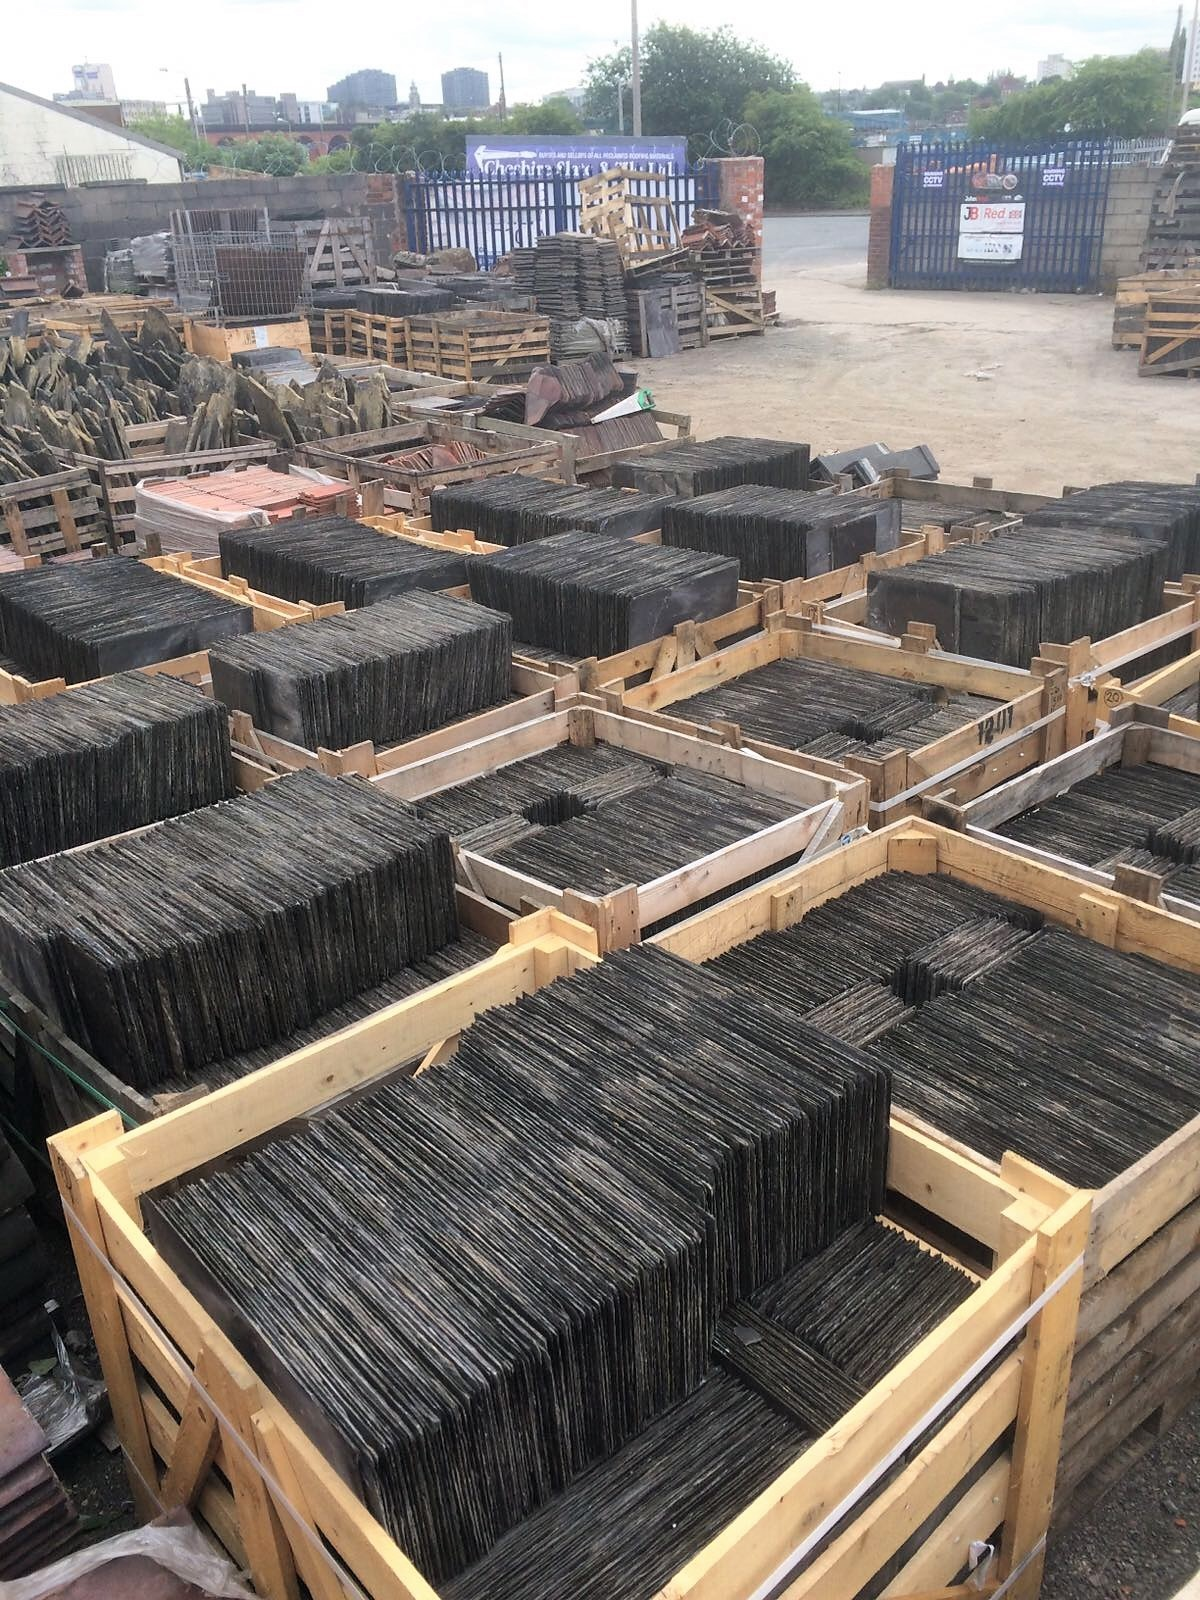 OUR YARD – RECLAIMED SLATES AND OTHER ROOFING PRODUCTS